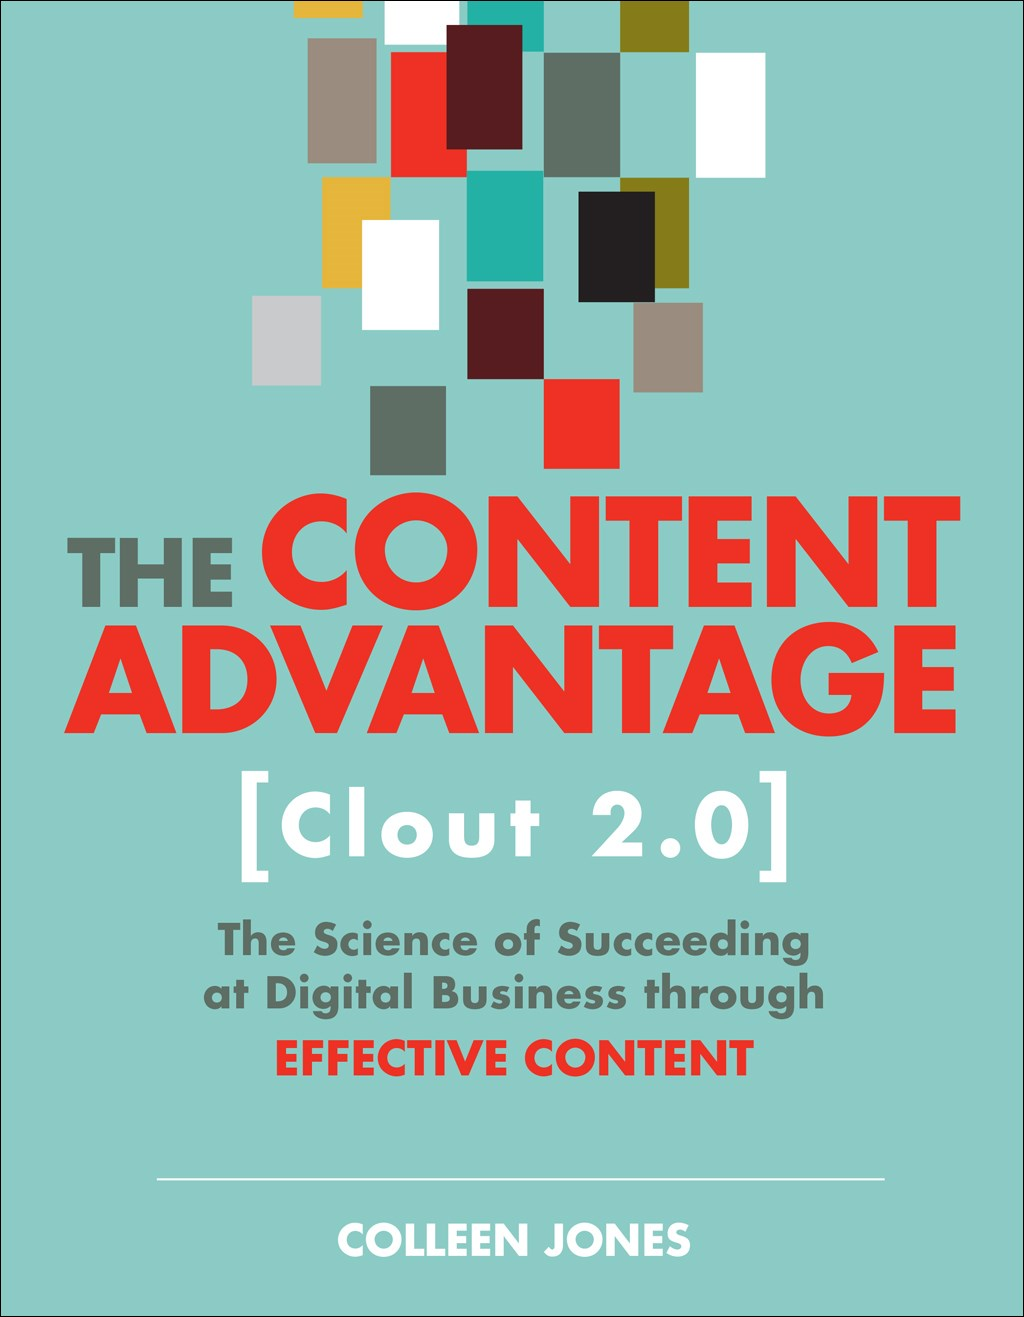 The Content Advantage (Clout 2.0): The Science of Succeeding at Digital Business through Effective Content, 2nd Edition